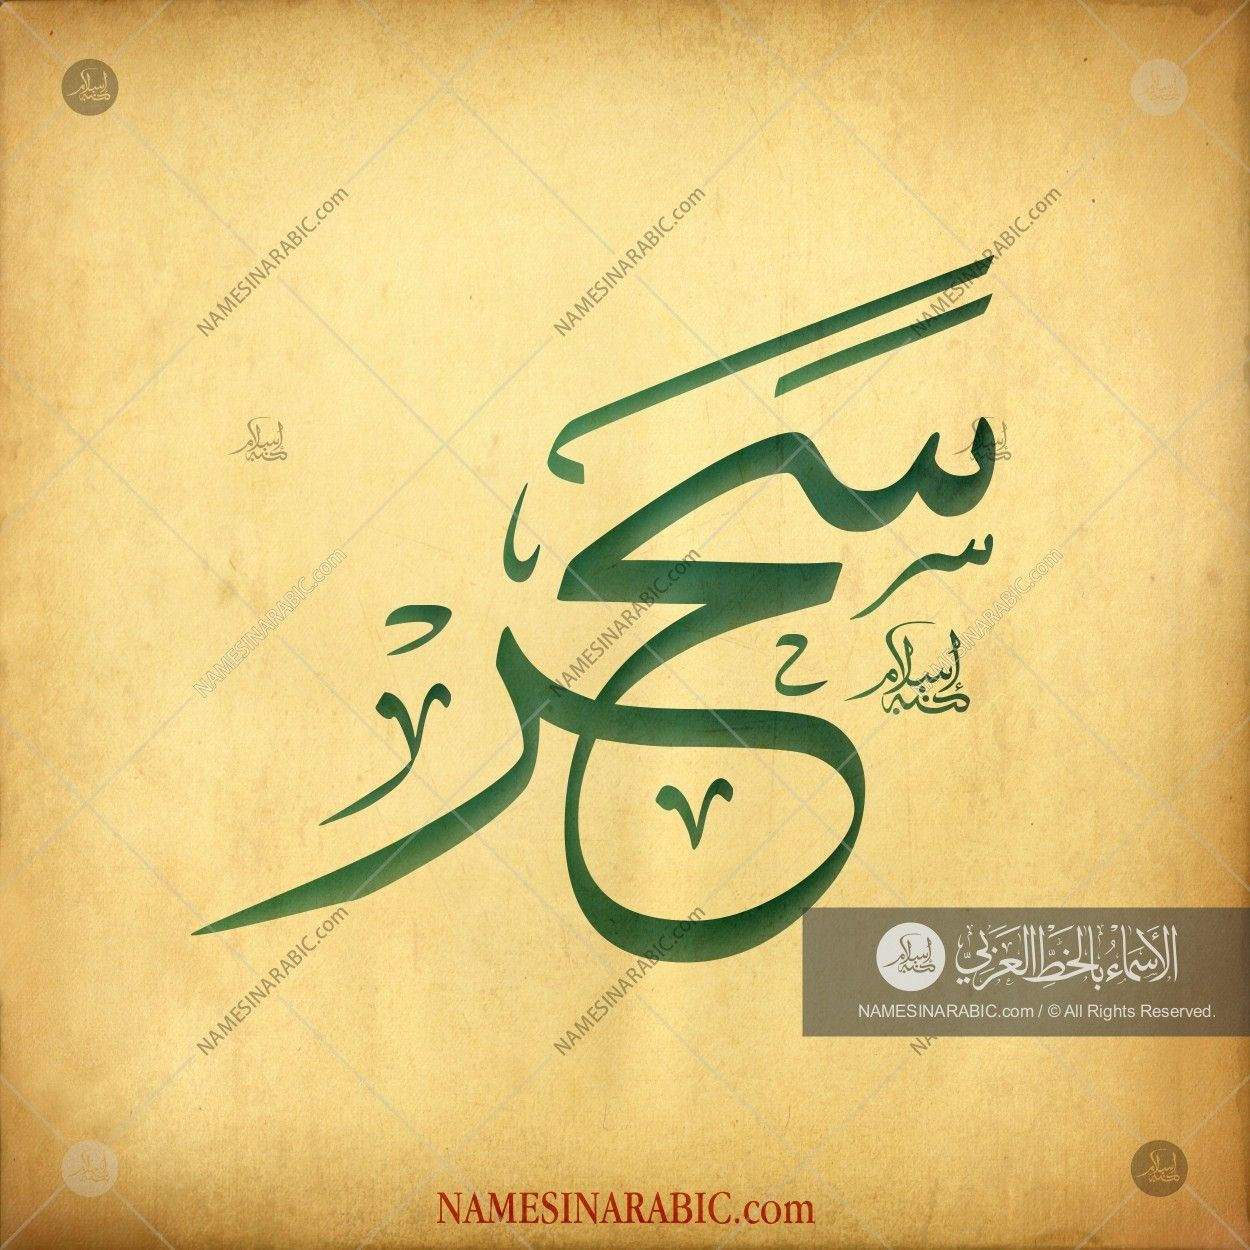 Sahar سحر Names In Arabic Calligraphy Name 3432 Calligraphy Name Calligraphy Islamic Calligraphy